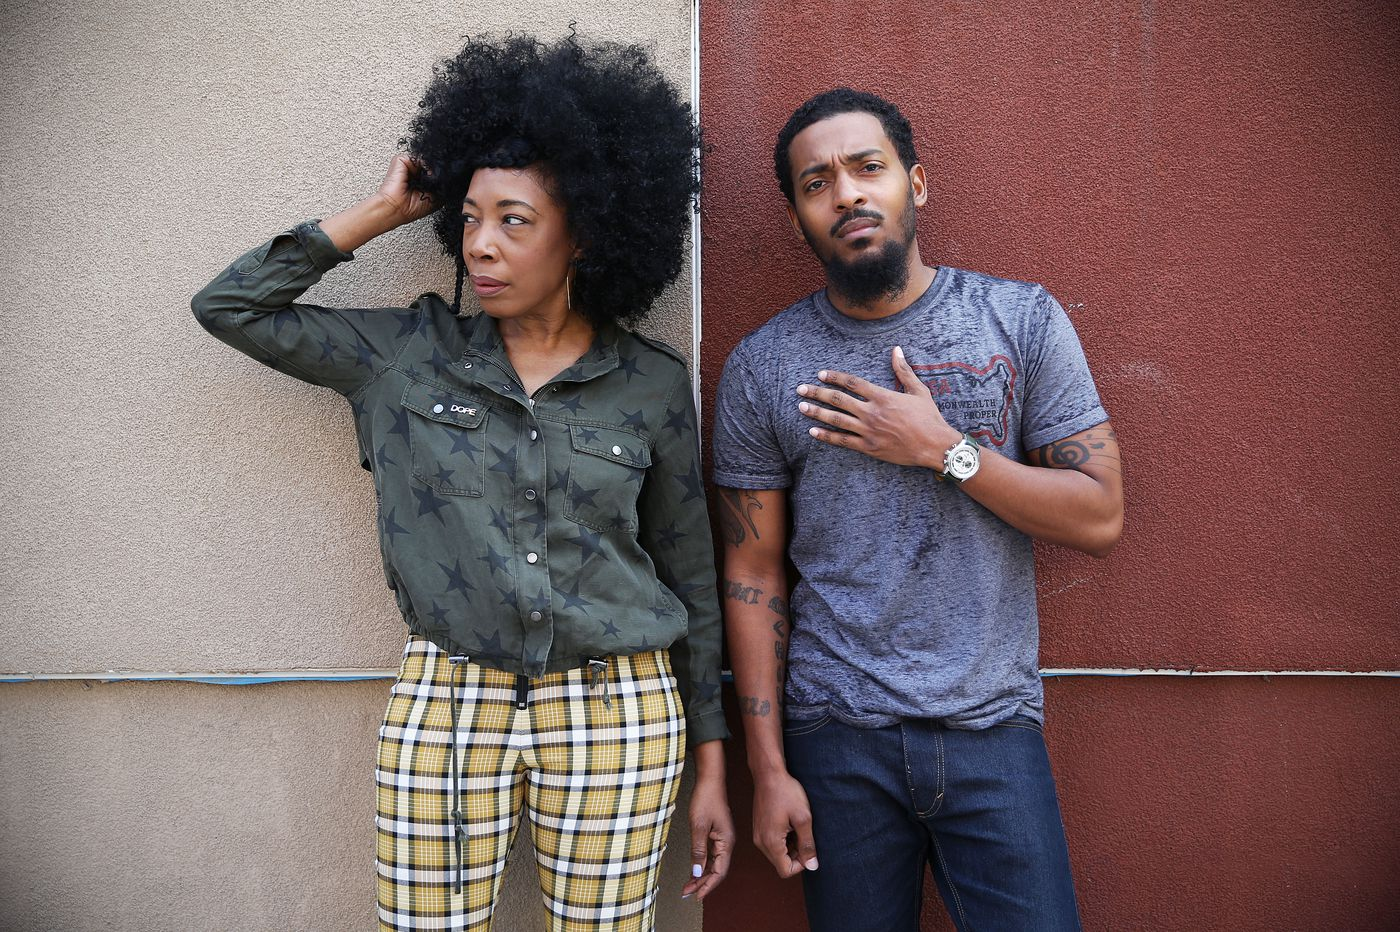 Philly rapper Chill Moody and singer/Questlove's sister Donn T have combined forces as &More